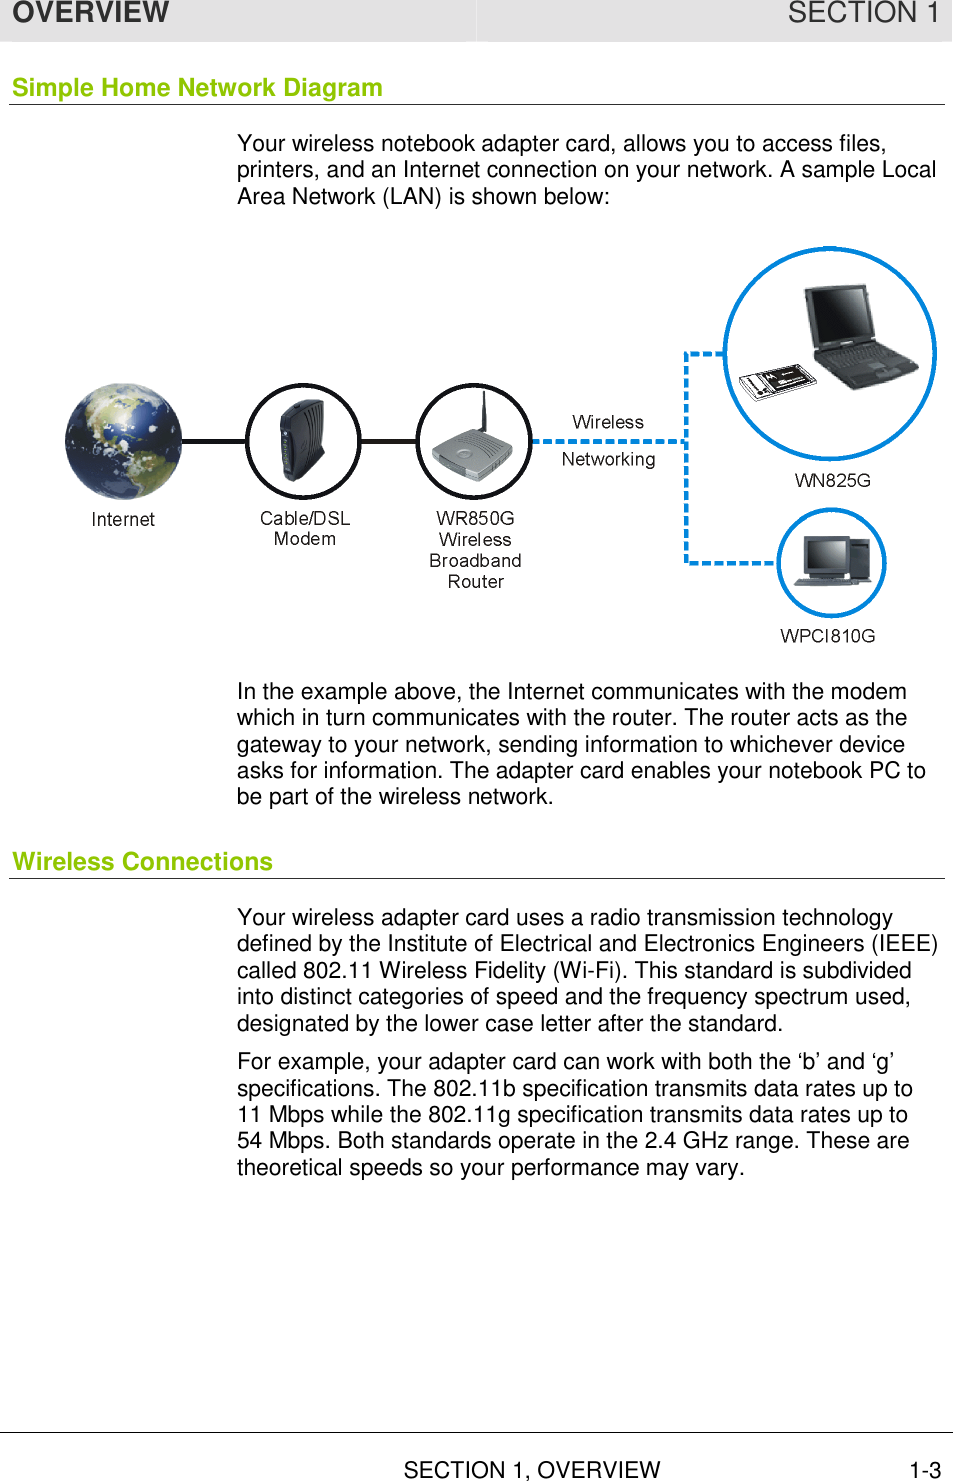 Arris Wn825g Wireless Notebook Adapter User Manual Home Network Diagram Simple Overview Section 1 3 Your